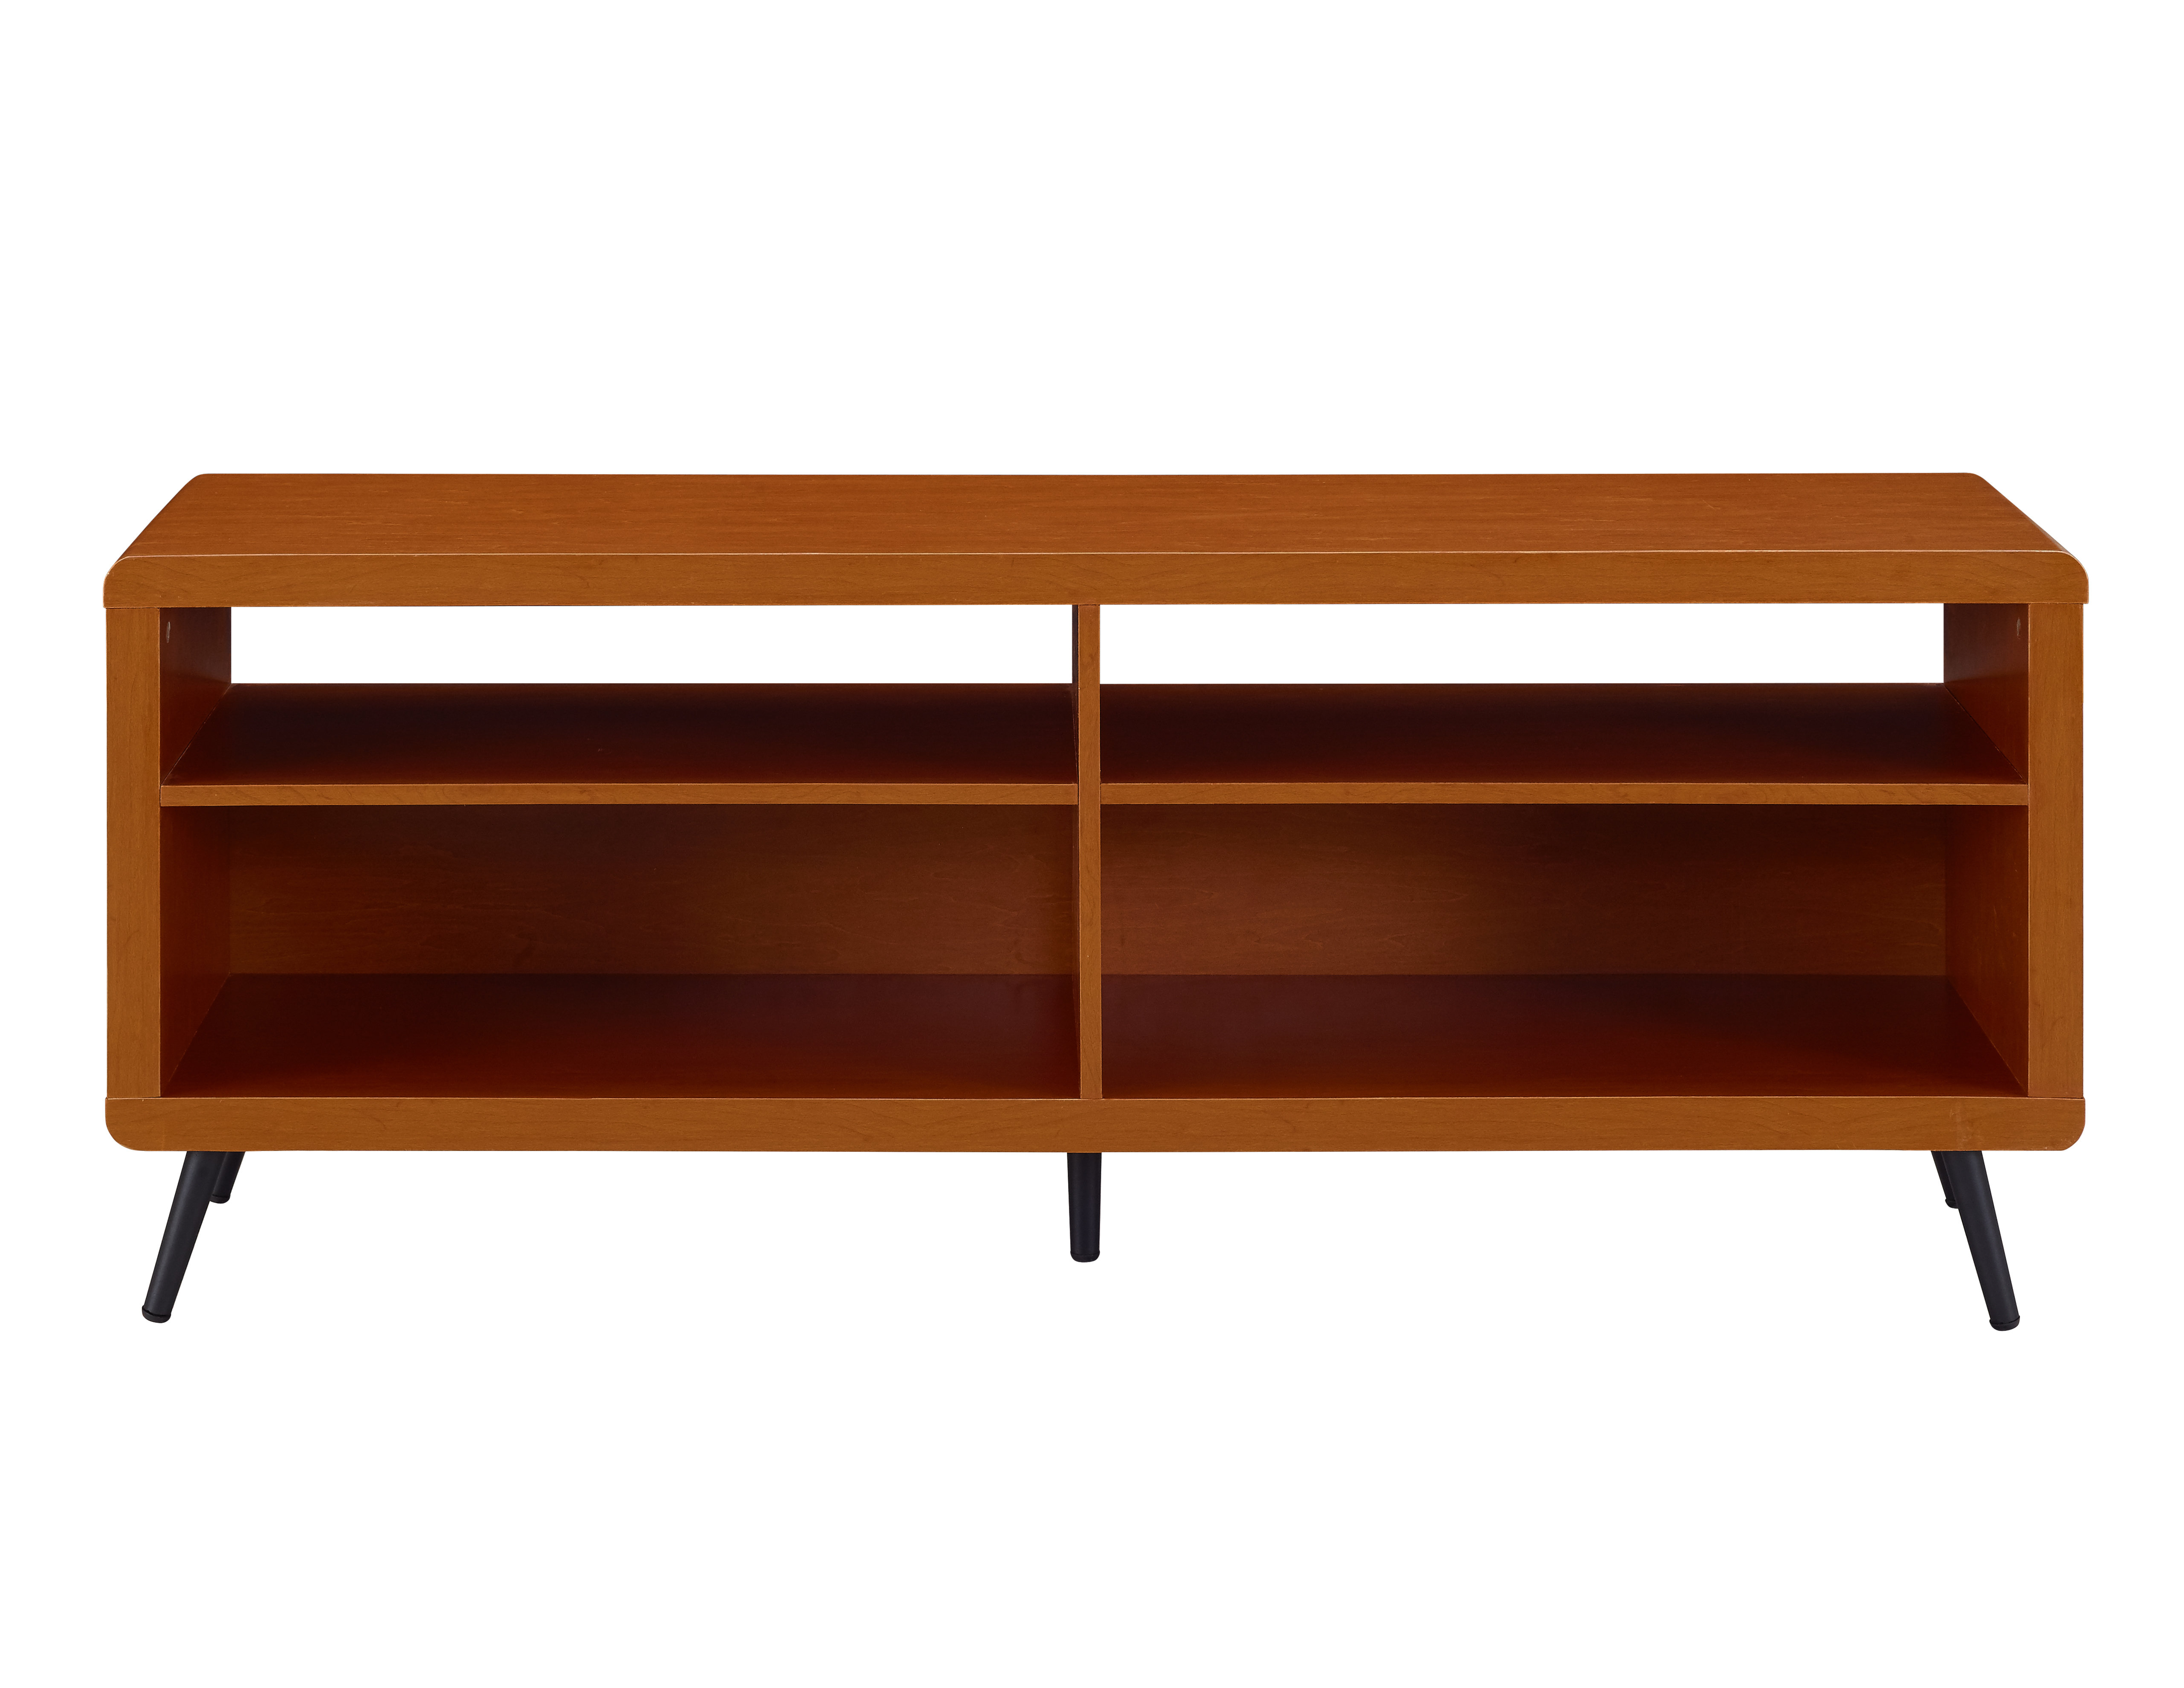 Tv Stands Rounded Corners Throughout Well Known Ivy Bronx Difranco Rounded Corner Wood 147cm Tv Stand & Reviews (View 6 of 20)